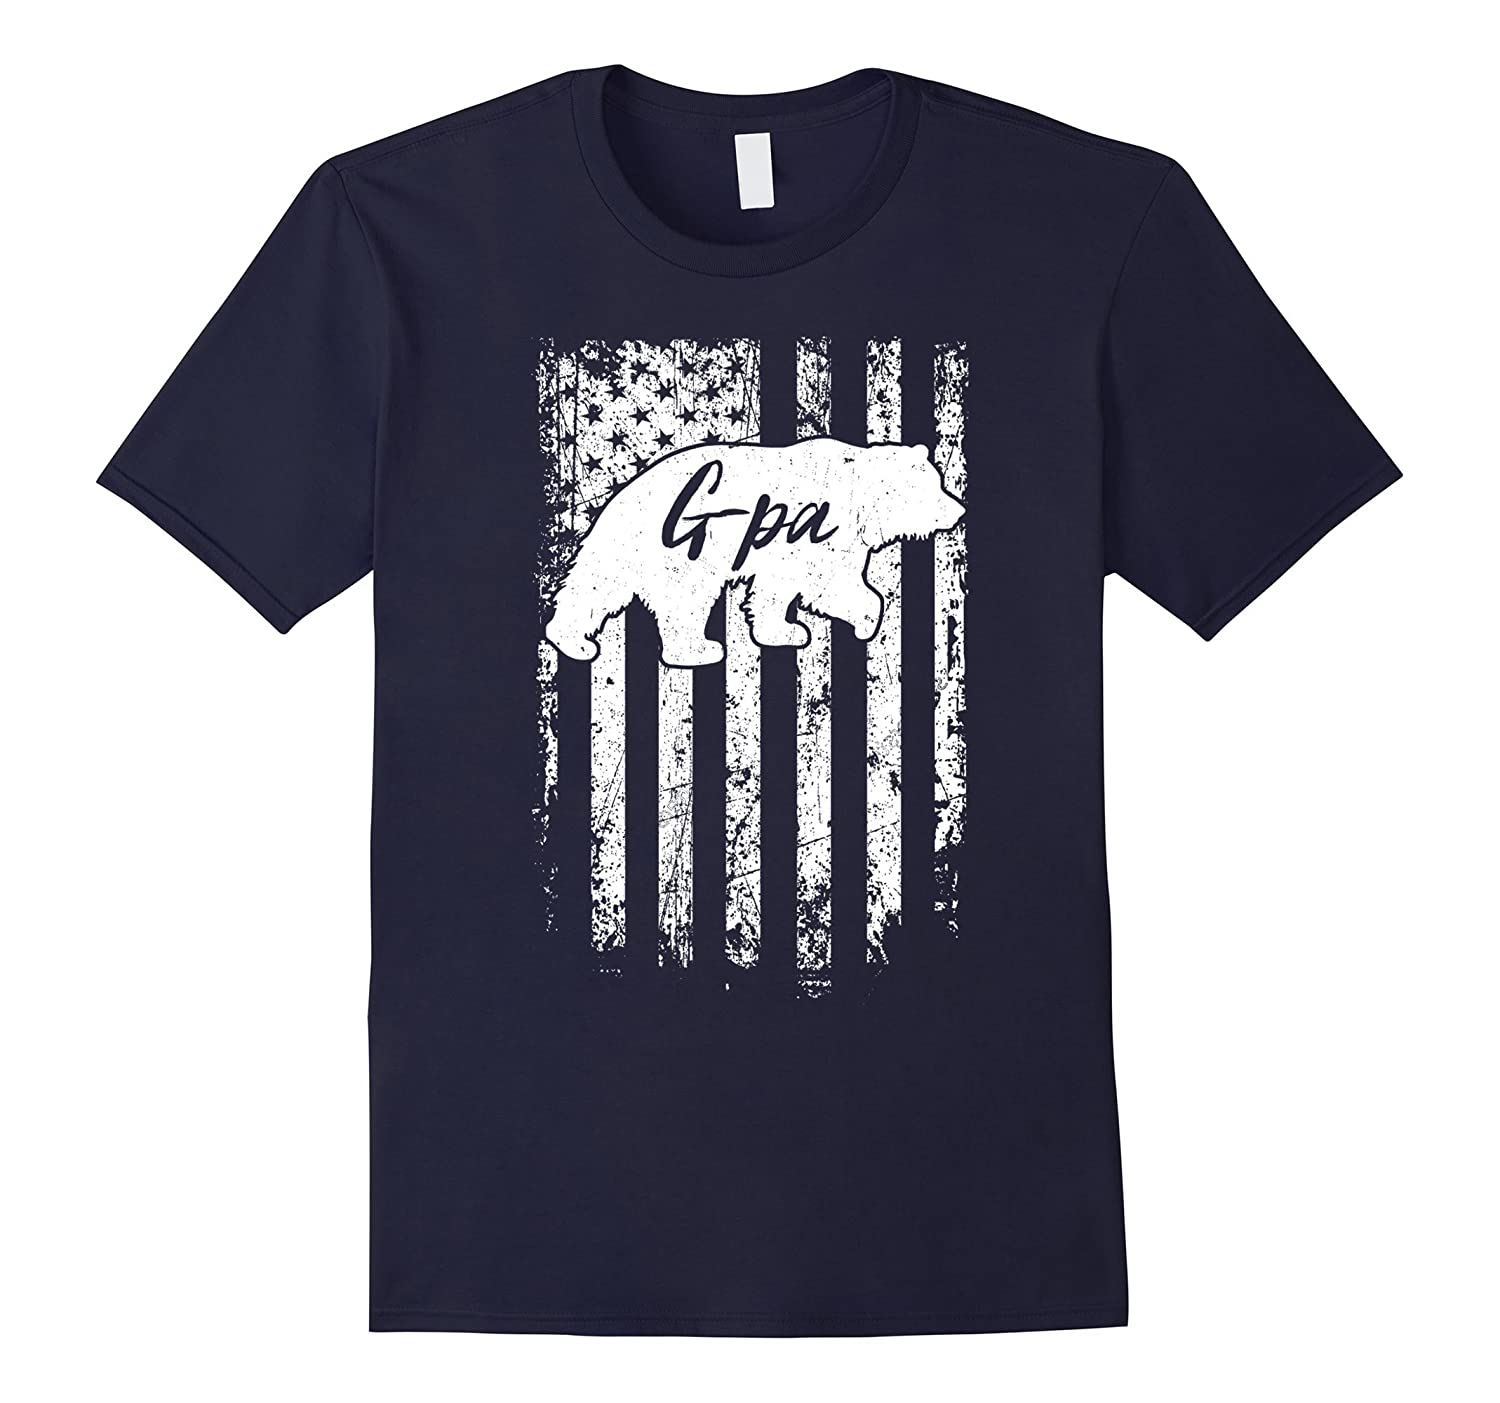 Mens American G-pa Bear Flag T-Shirt Gifts for G-pa-TH